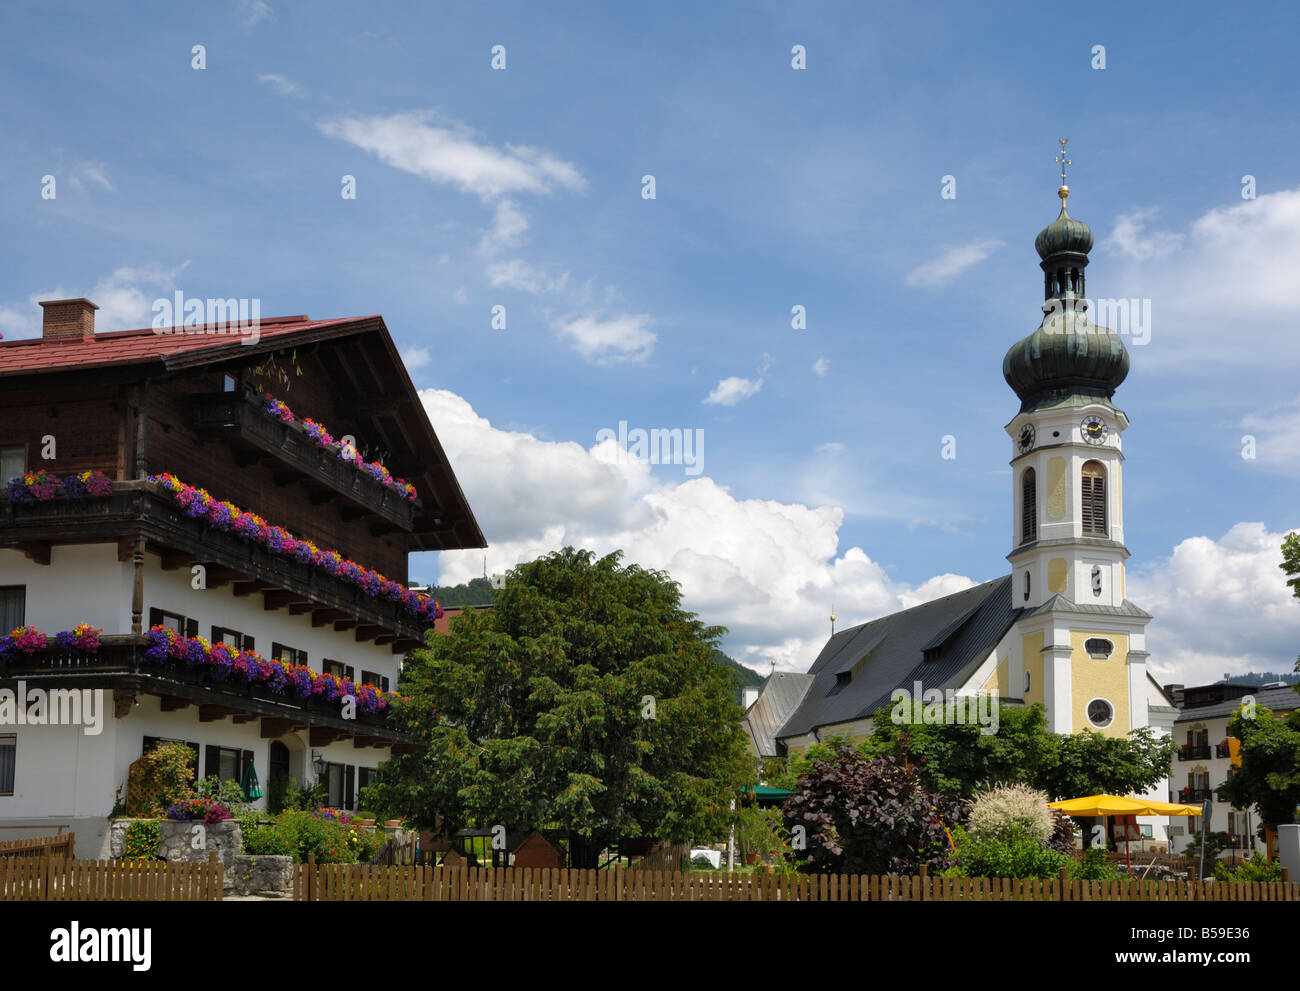 Reit im Winkl, Bavaria, Germany - Stock Image